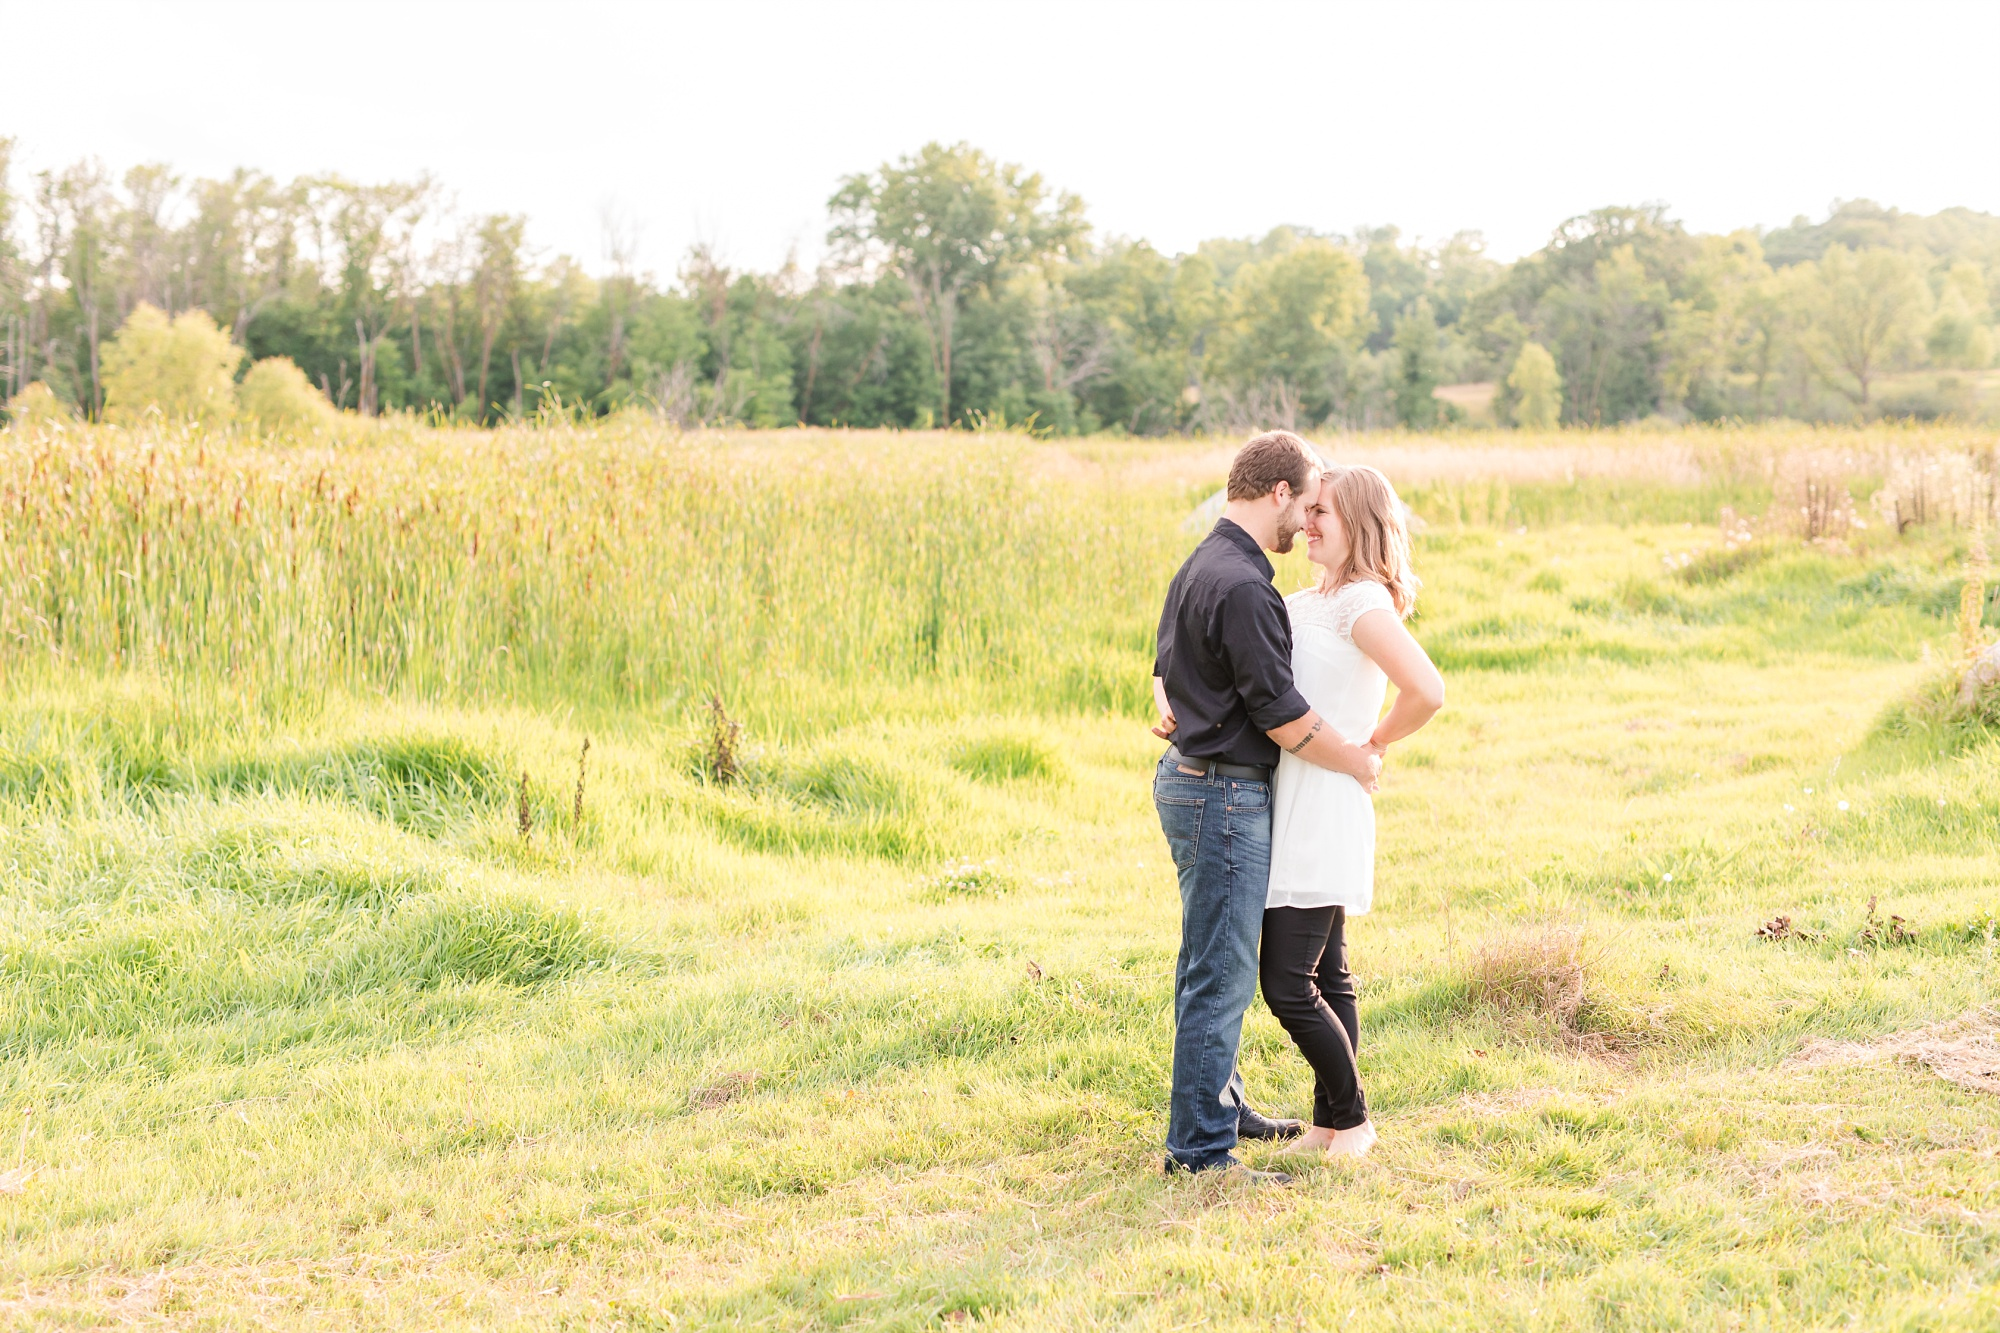 AmberLangerudPhotography_Countryside Engagement Session in Minnesota_3106.jpg